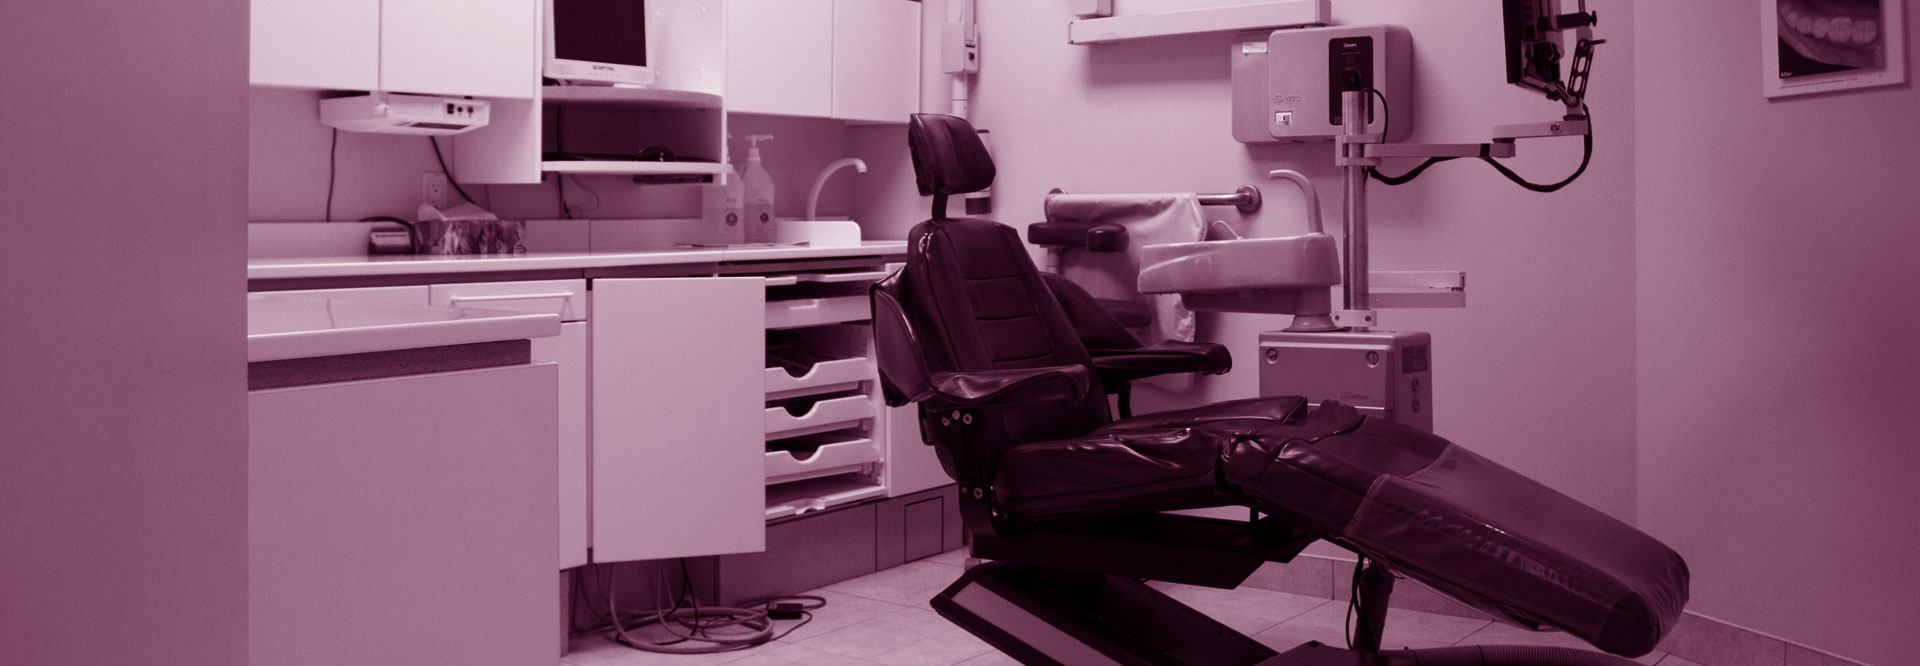 emergencycare-banner-1